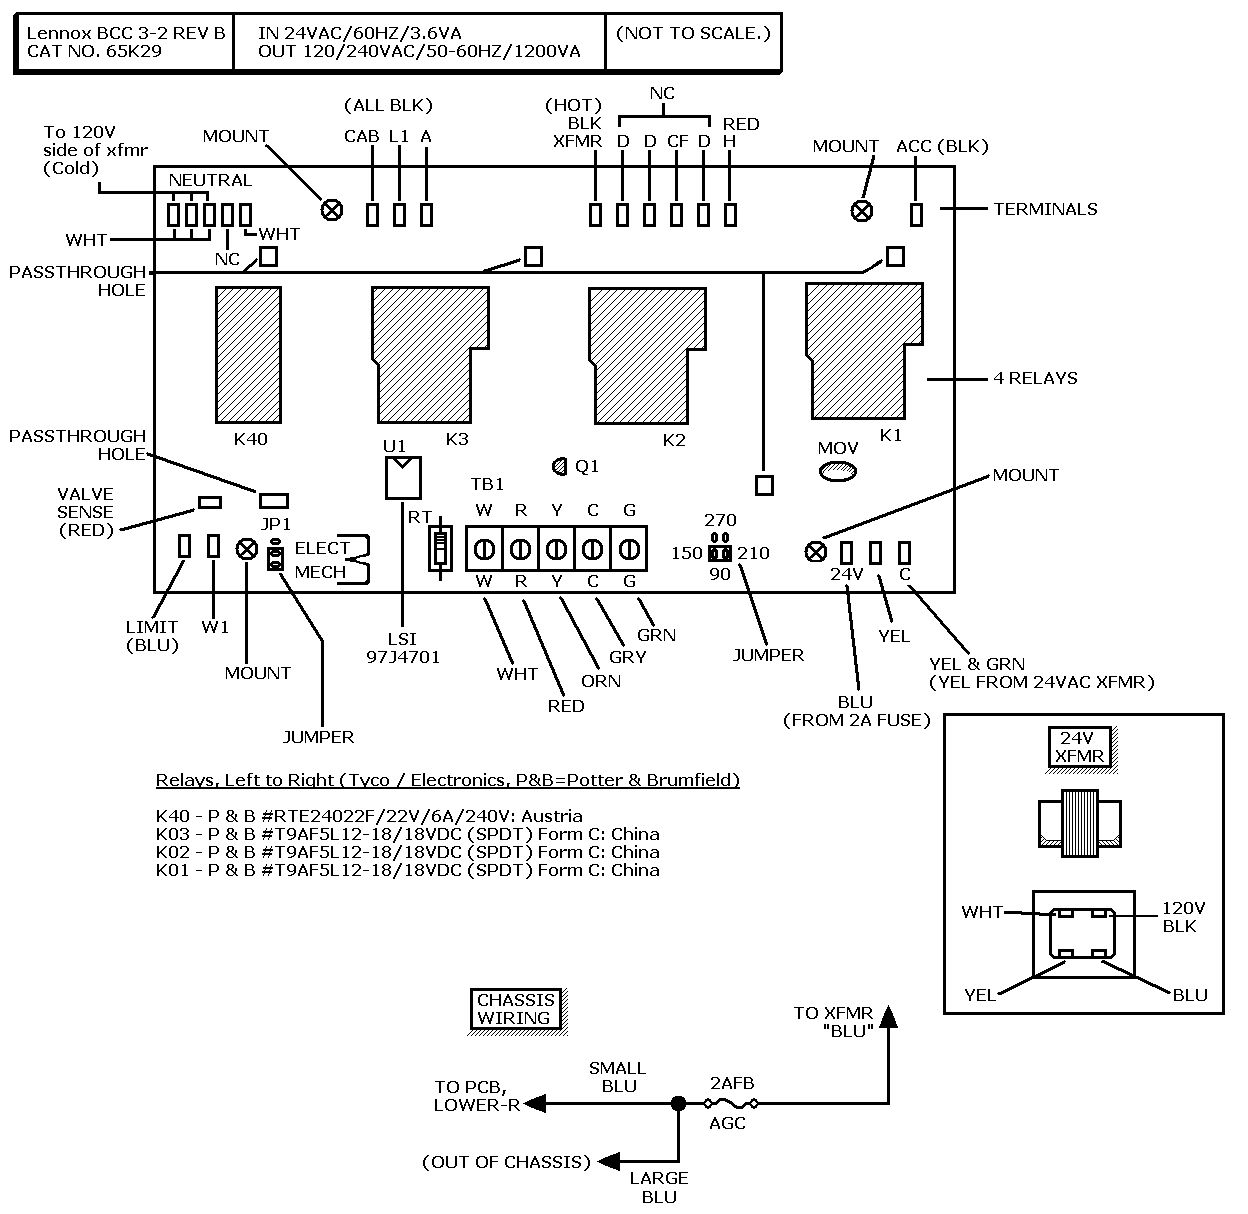 hight resolution of fresh lennox furnace thermostat wiring diagram 18 in fender jazz andfresh lennox furnace thermostat wiring diagram